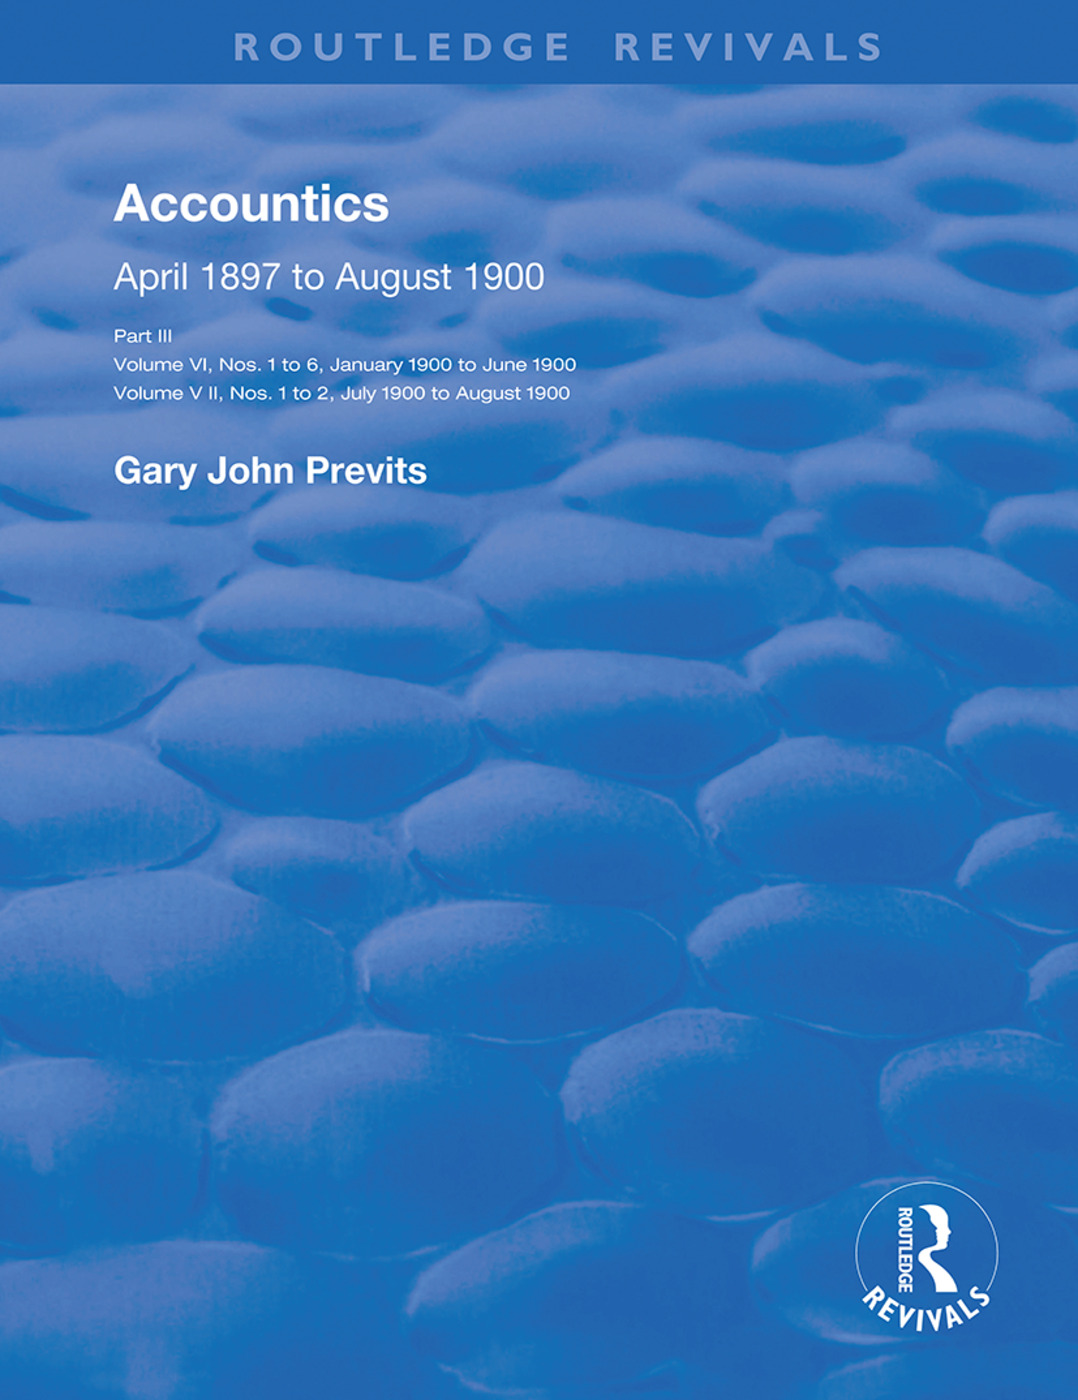 Accountics, Part III: January 1900 to August 1900 book cover